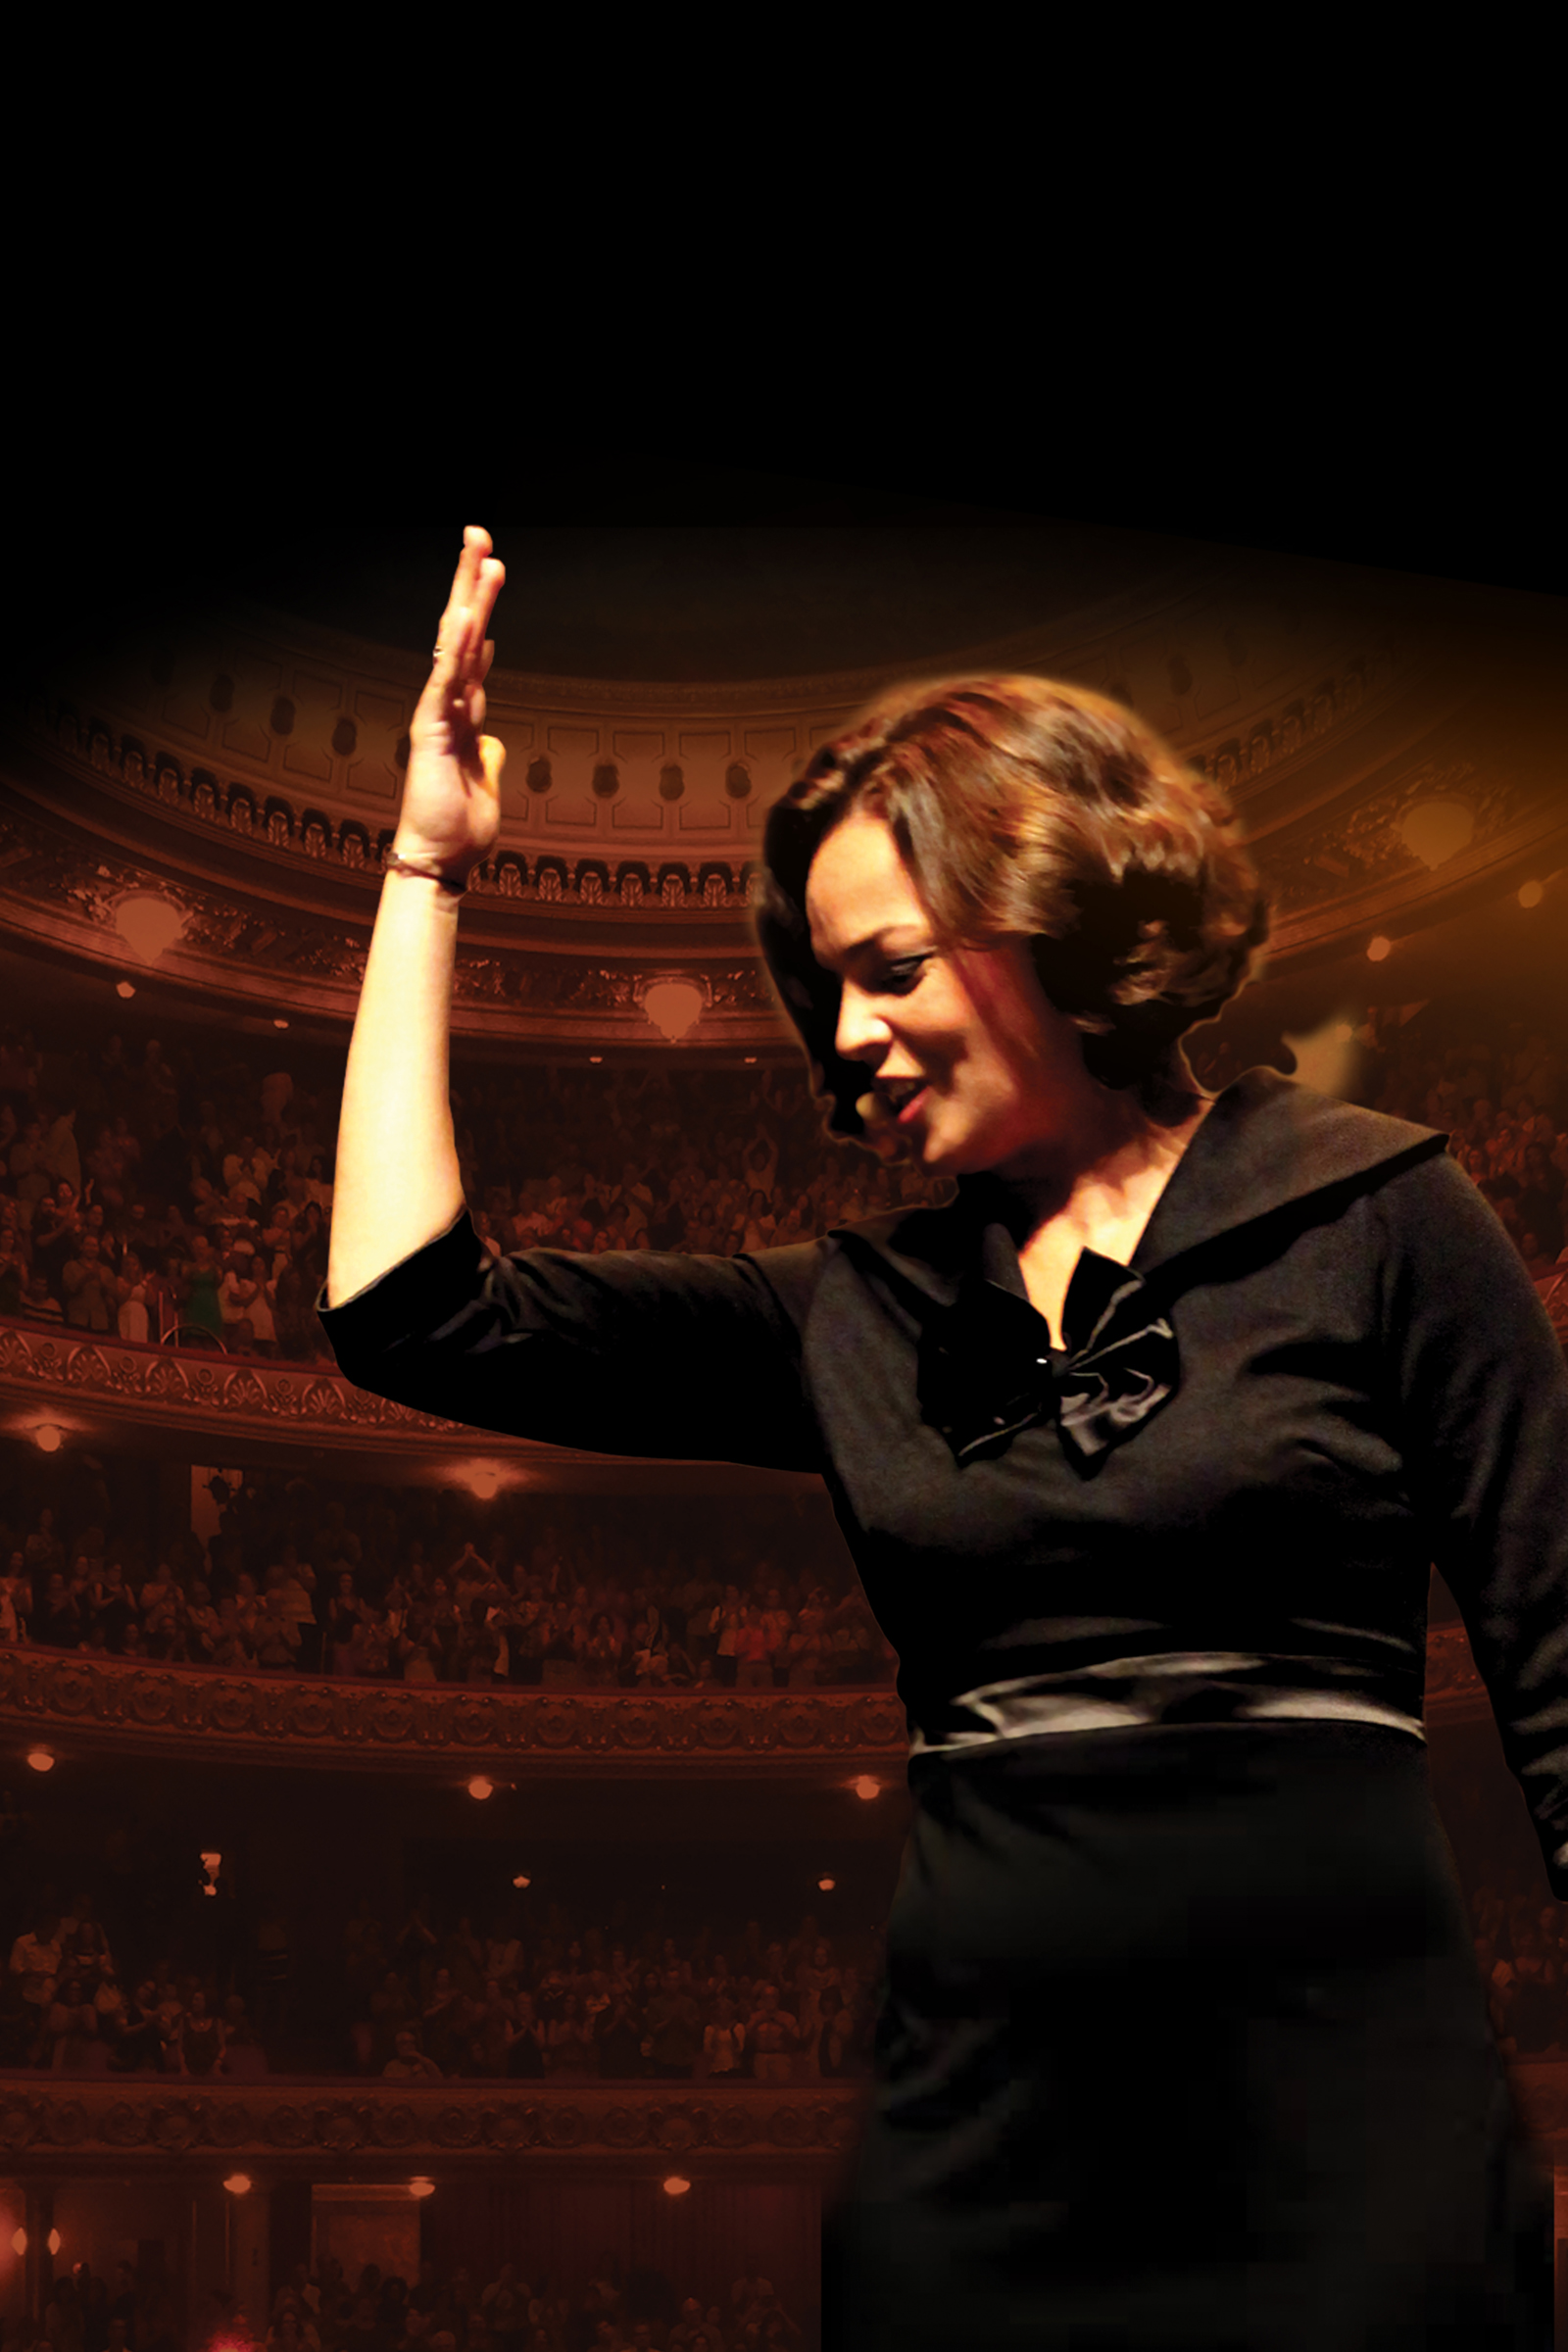 Anne-Carrere-in-Piaf-The-Show-photo-1a-by-G-Marsalla